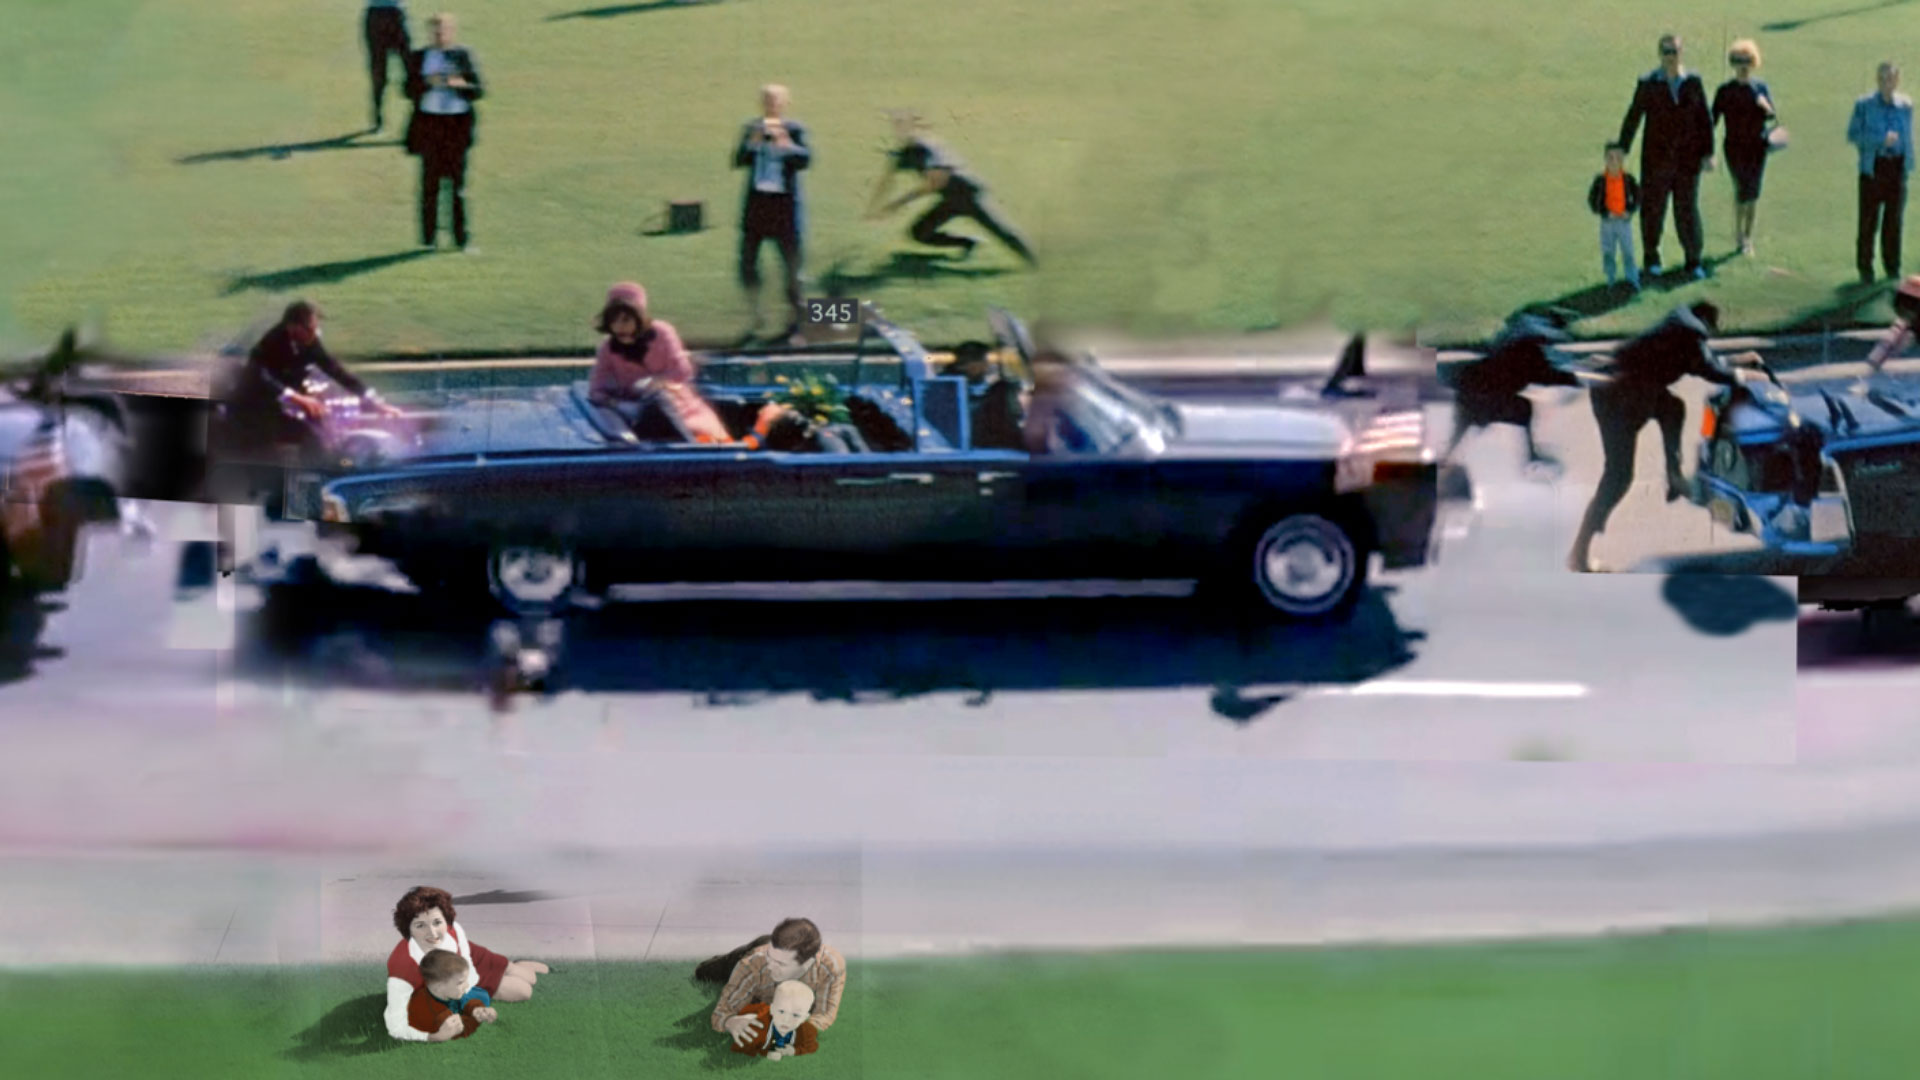 the assassination of jfk What the government is still hiding about the jfk assassination the national archives, for the first time ever, released a list of documents related to the assassination that are still shielded from public view.